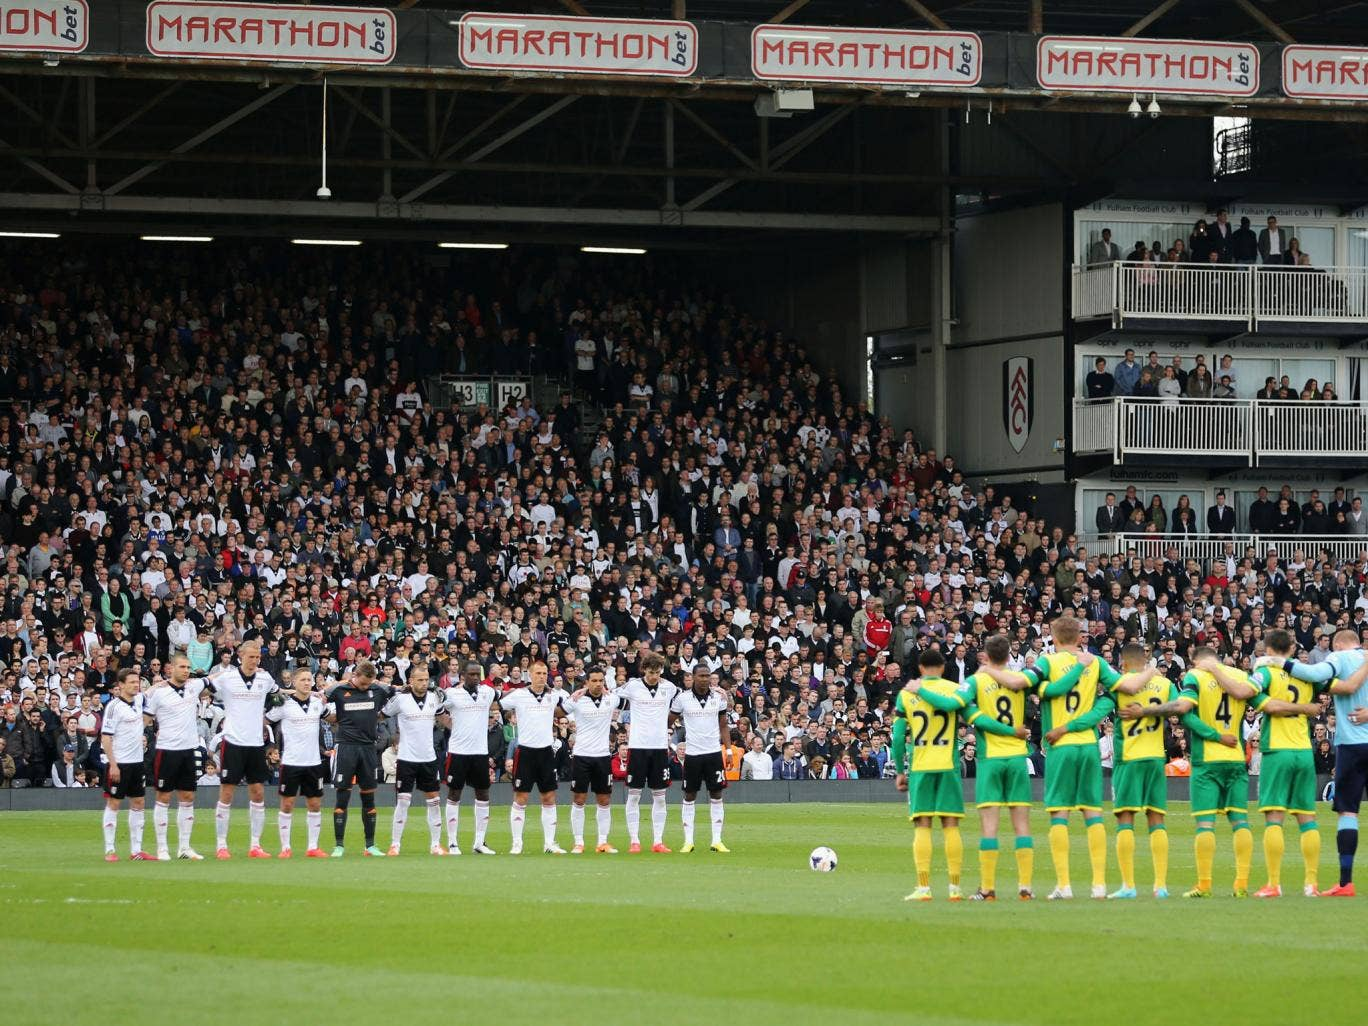 Players and fans observe a minute's silence to mark the 25th anniversary of the Hillsborough disaster